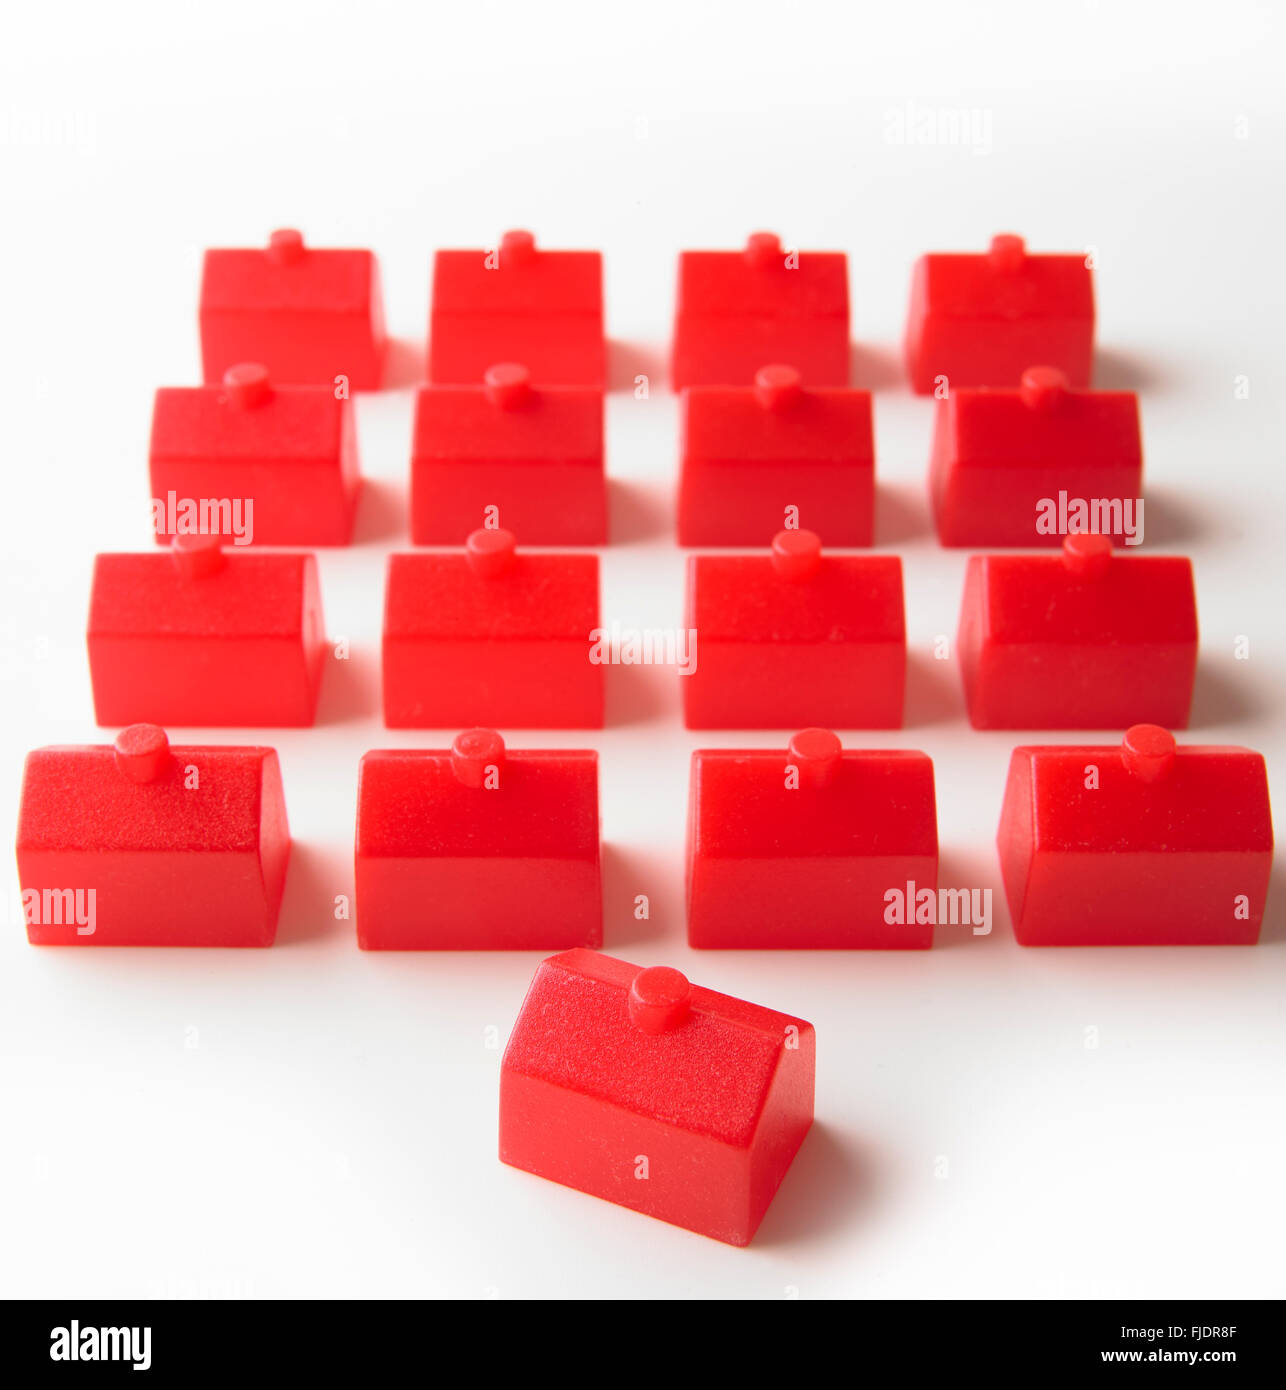 Identical red houses, one house angled in foreground - Stock Image